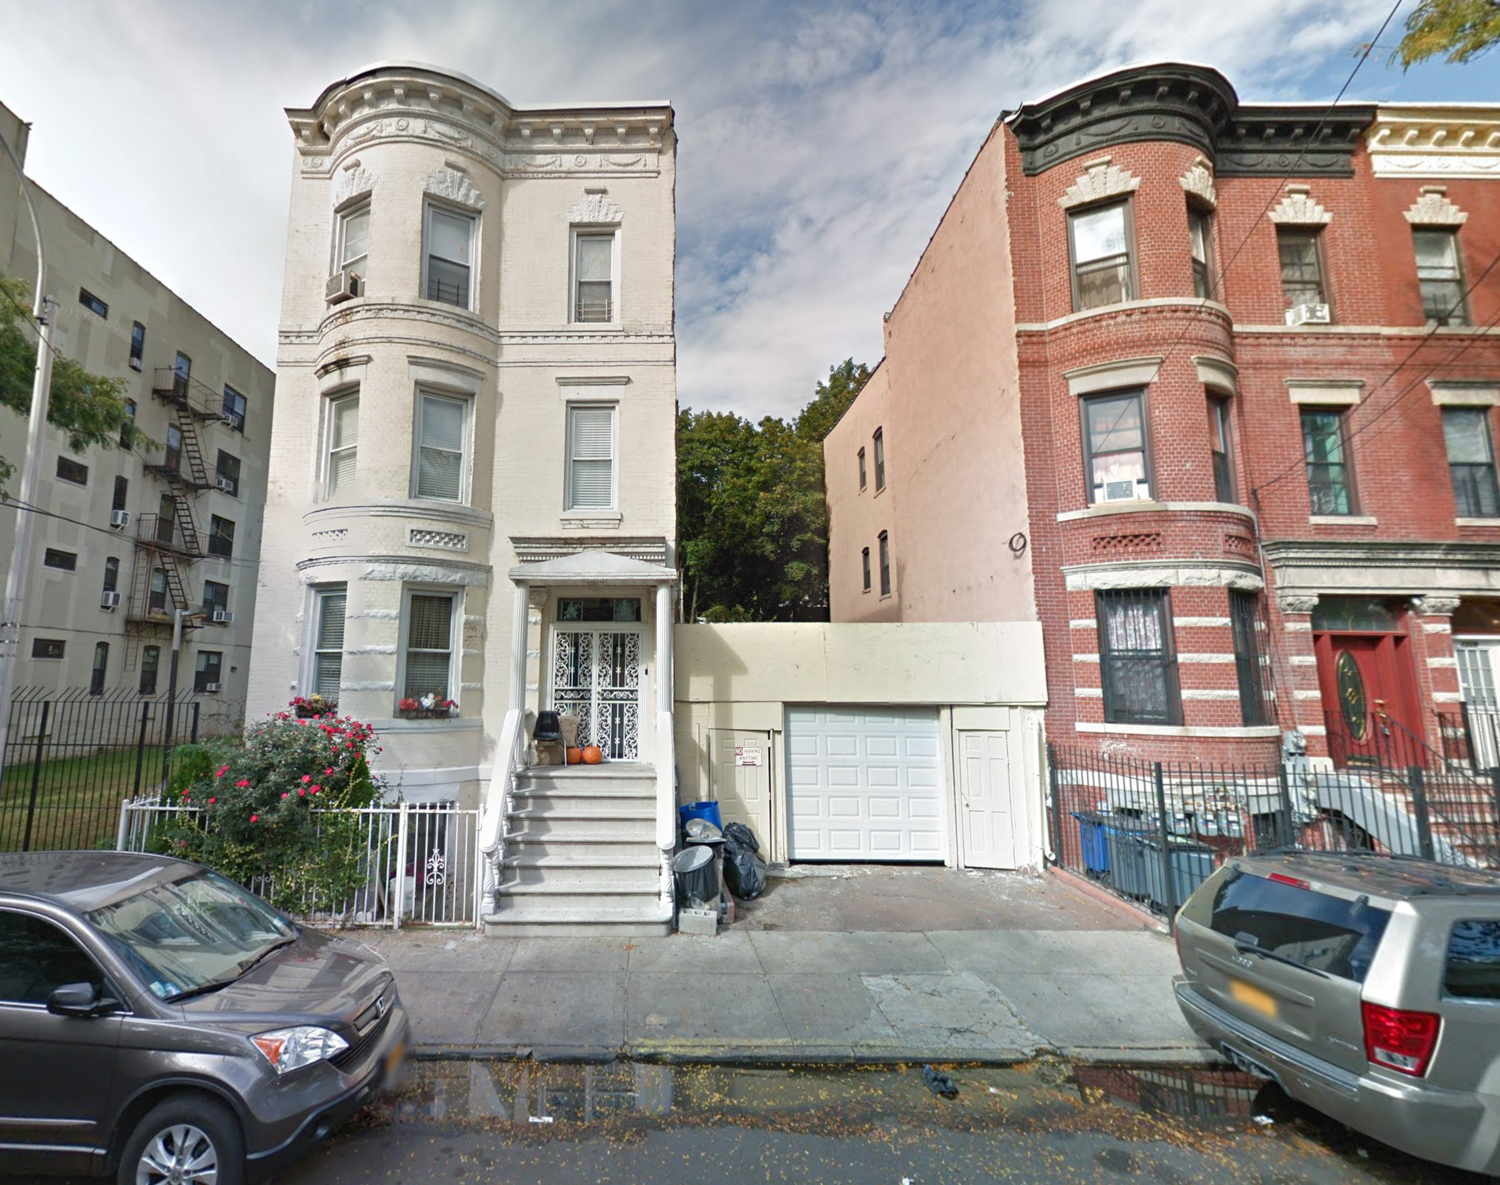 1225 Union Avenue, via Google Maps